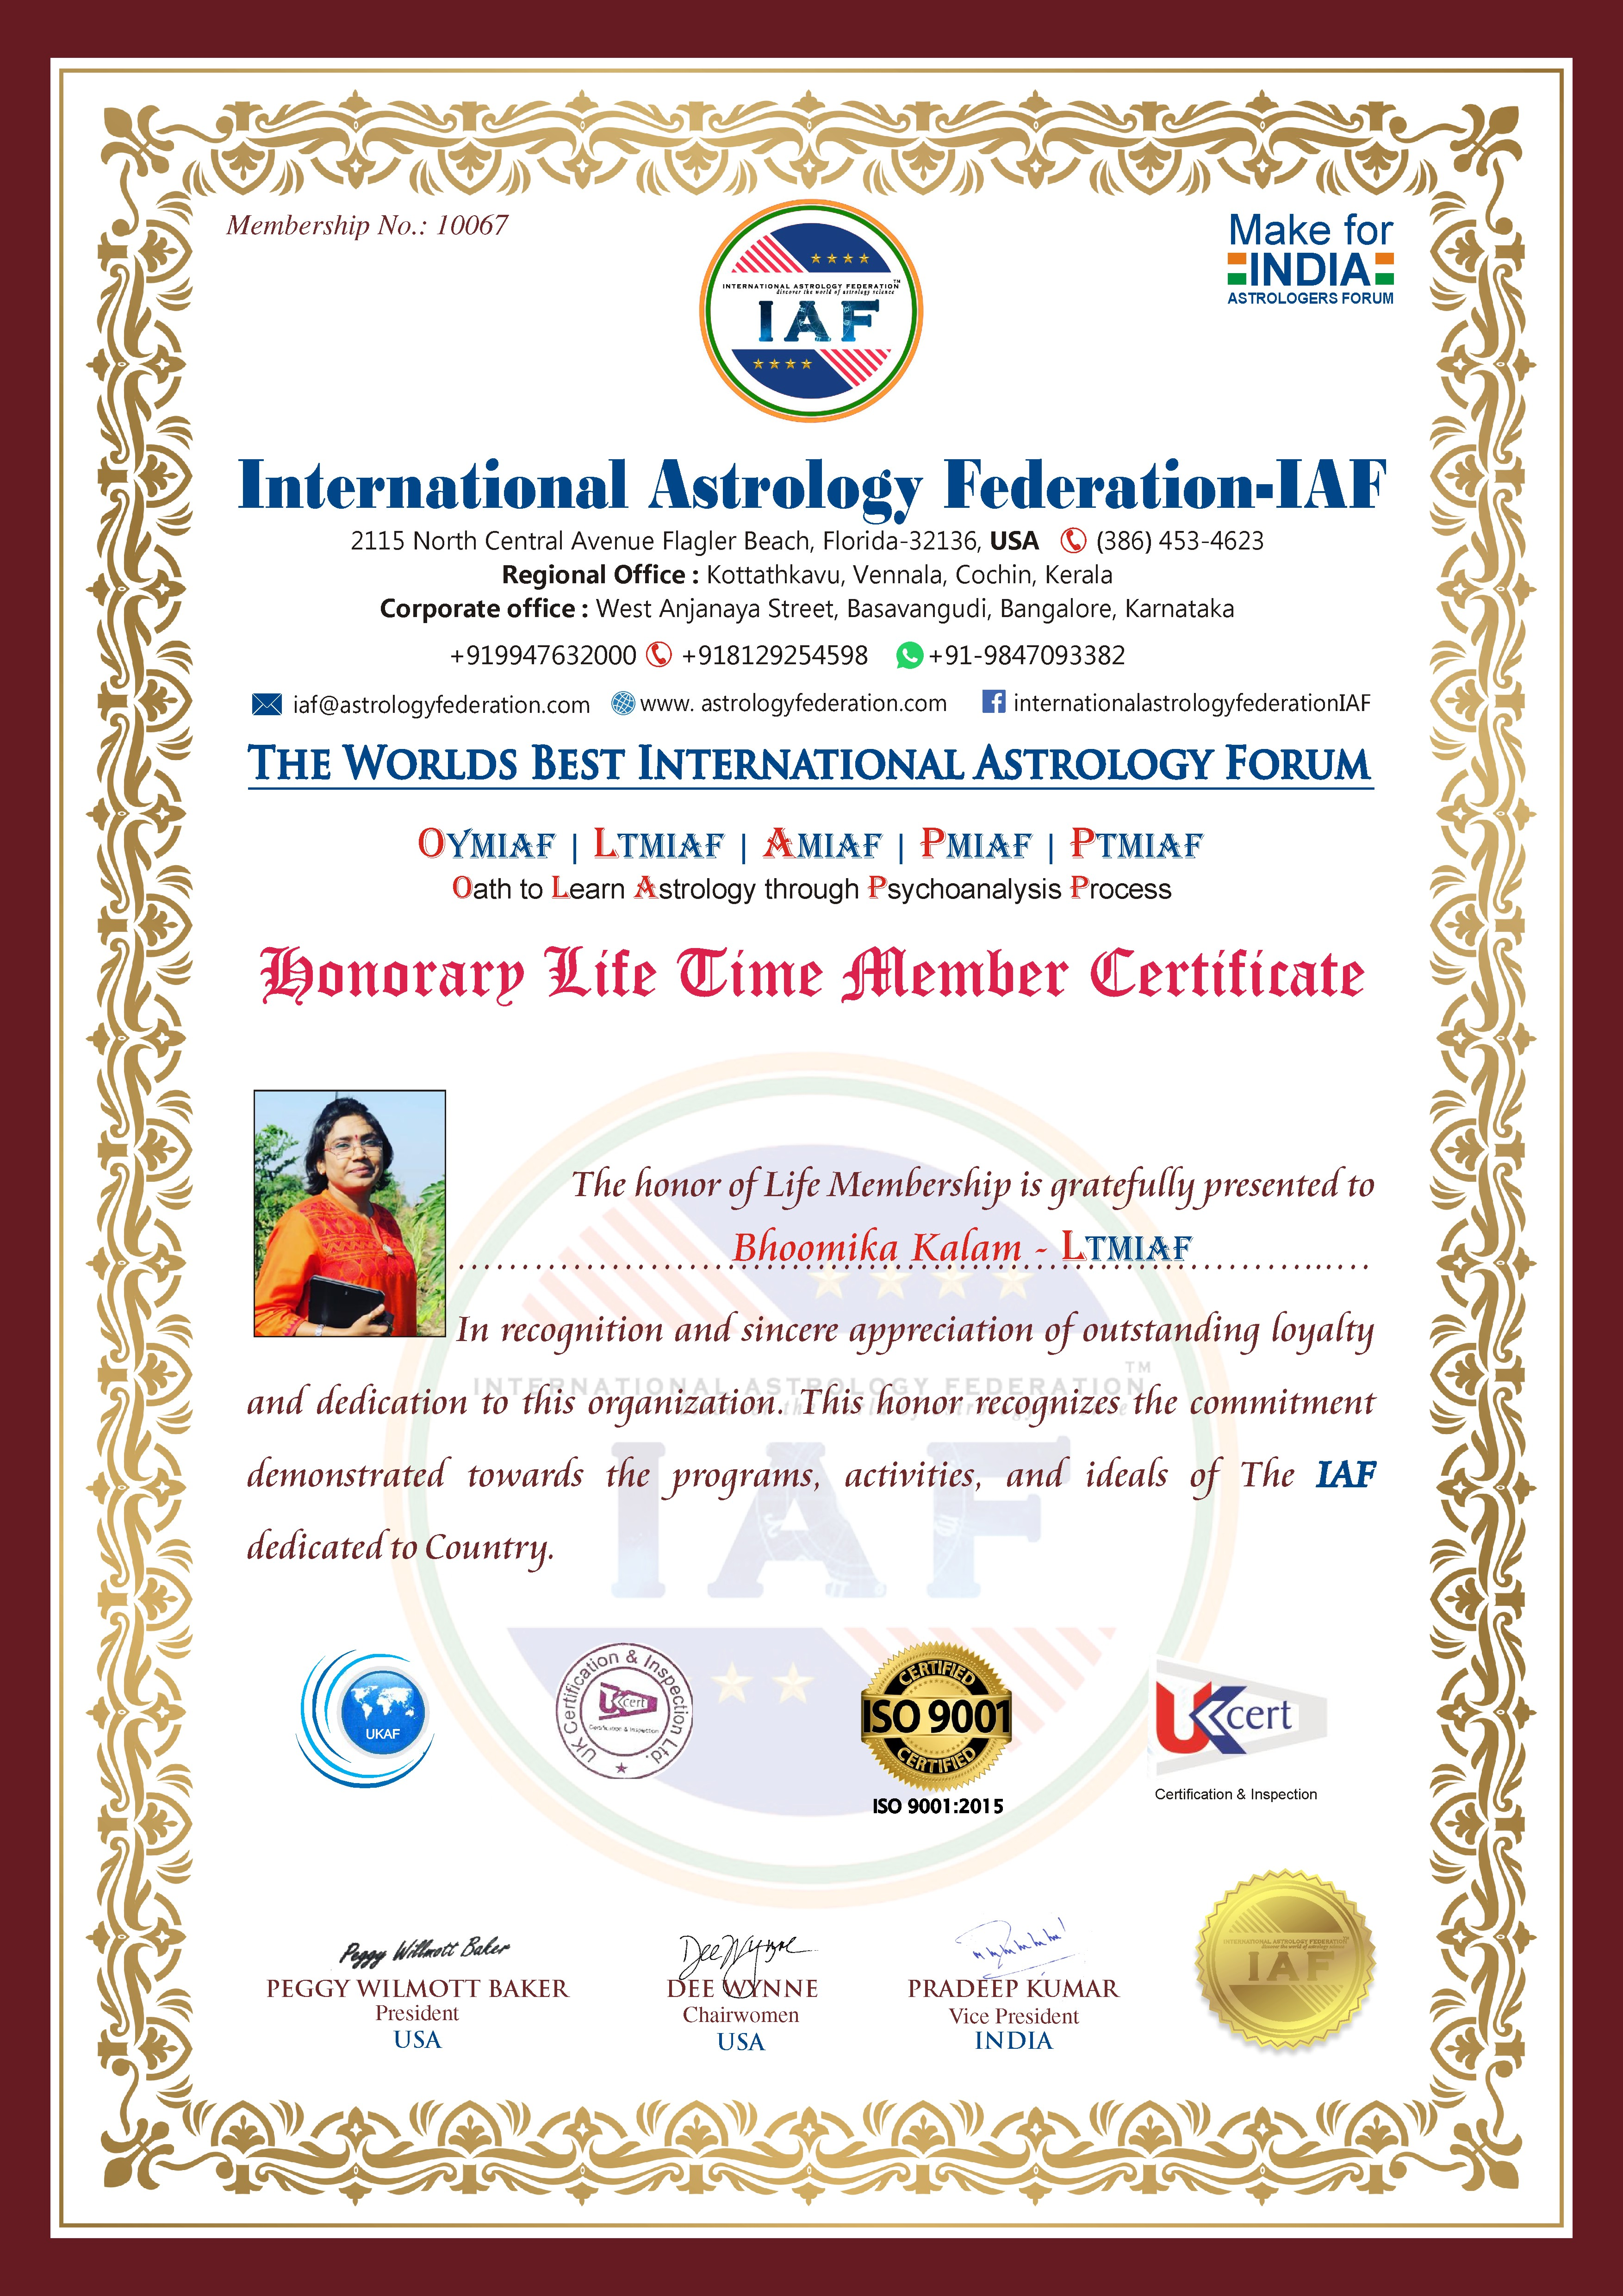 The world best Astrology Forum Award - Bhoomika Kalam